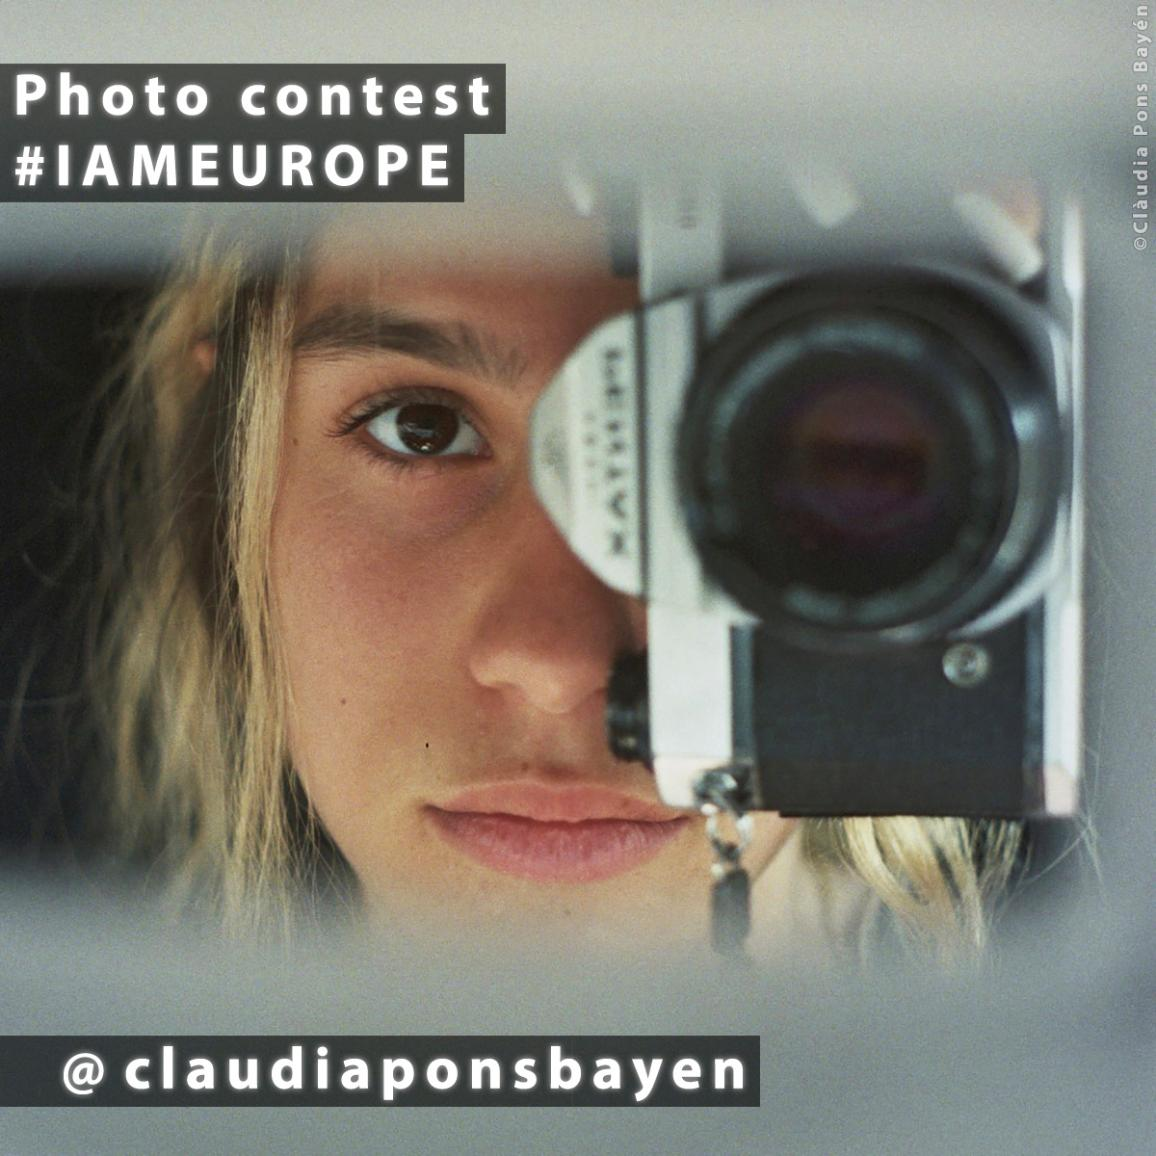 Special thanks to the Spanish photographer Clàudia Pons Bayén (instagram @claudiaponsbayen) for your photo contest testimonial